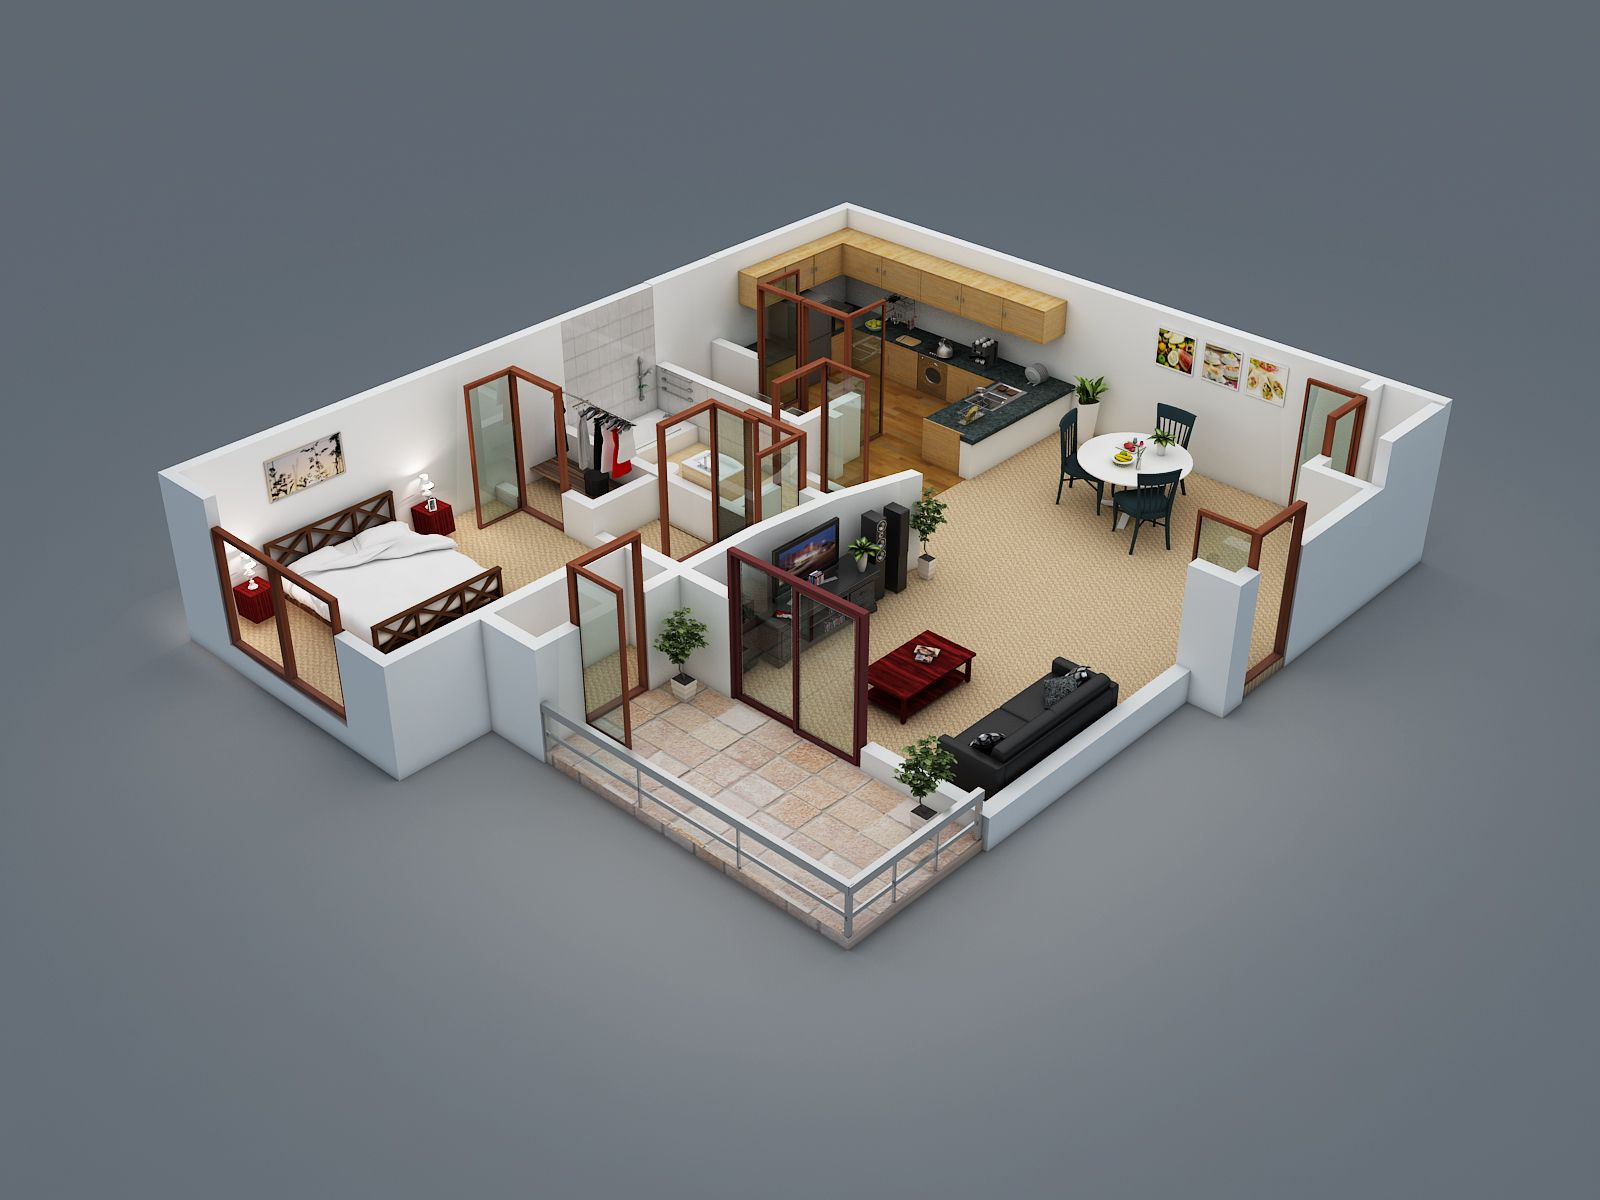 Http://www.rayvatengineering.com/3d Floor Plan/   One Of The Main Things To  Keep In Mind While Choosing An Architectural Floor Plan Is How Long The  Person ...